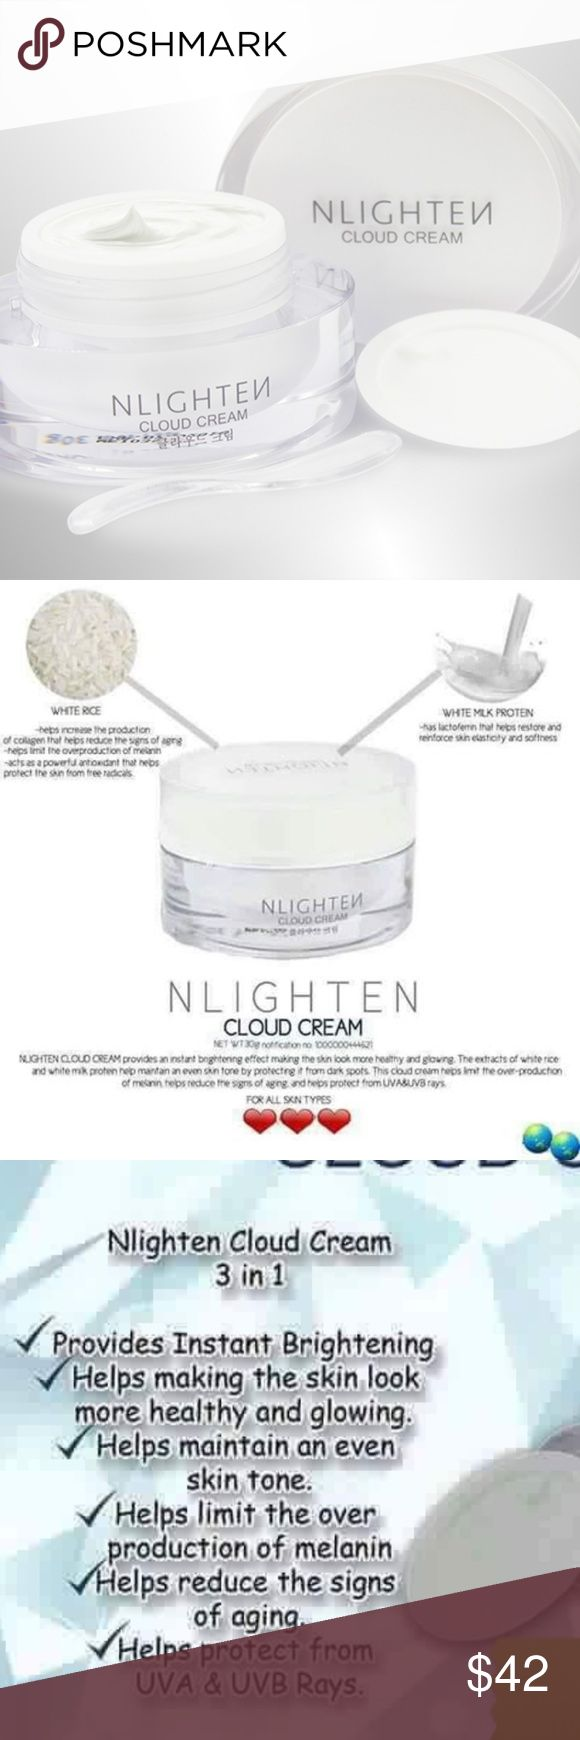 NWORLD NLIGHTEN CLOUD CREAM NLighten Cloud Cream is an instant lightening cream that helps your skin look healthy and glowing making it more vibrant and smooth. Especially formulated to reveal the more beautiful you. With extracts of white rice and white milk protein, NLighten Cloud Cream helps: ✓ Maintain an even skin tone by protecting it from dark spots. ✓ Helps limit the over-production of melanin ✓ Helps reduce the signs of aging and helps protect from UVA & UVB rays.  ** Price is firm…